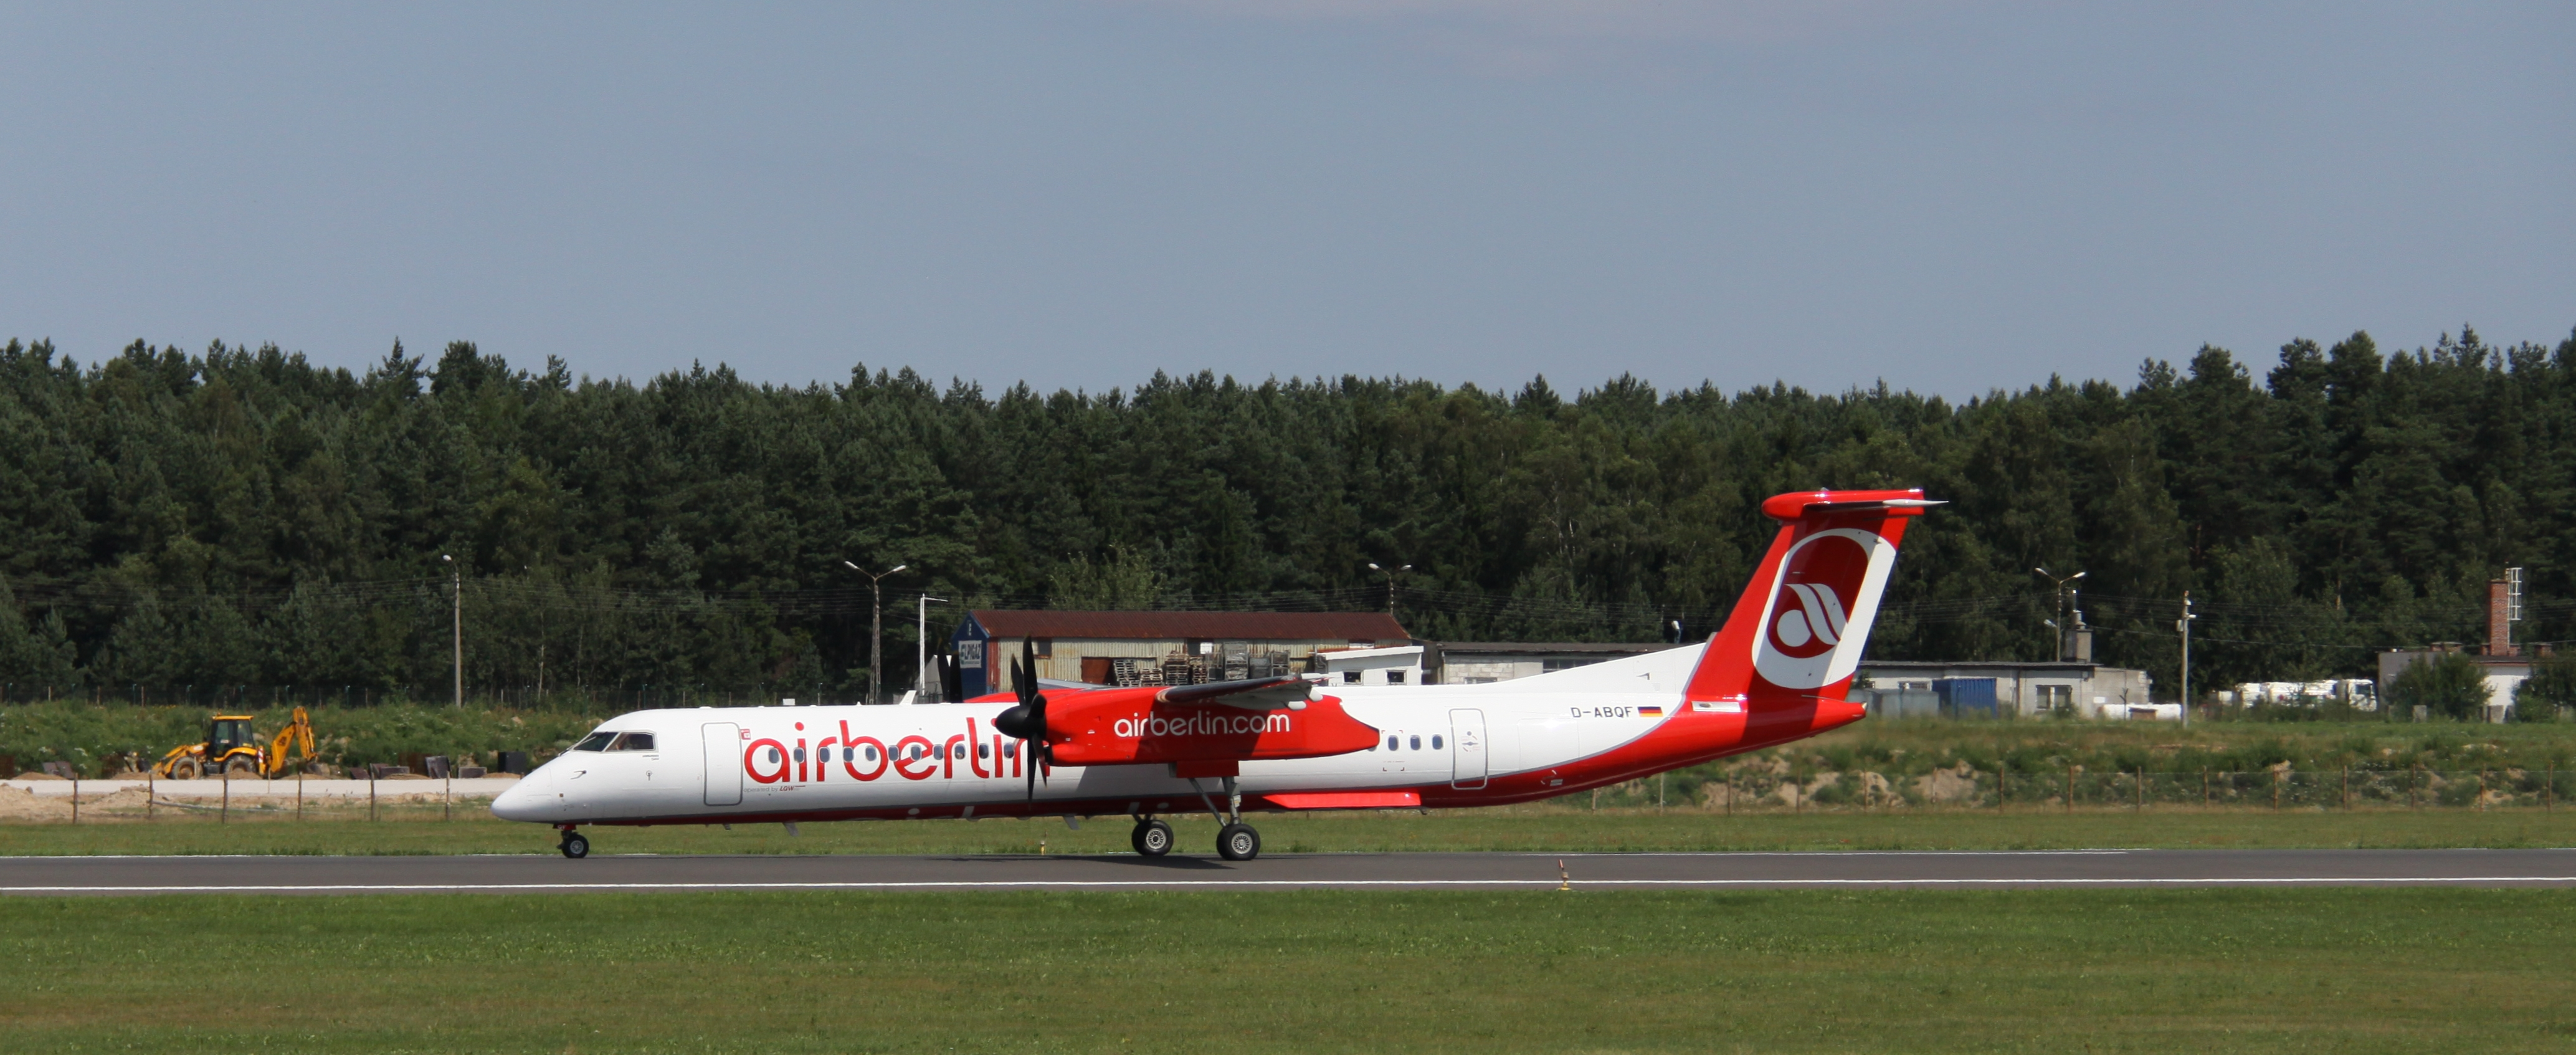 De Havilland Canada DHC-8-400 Dash 8 next